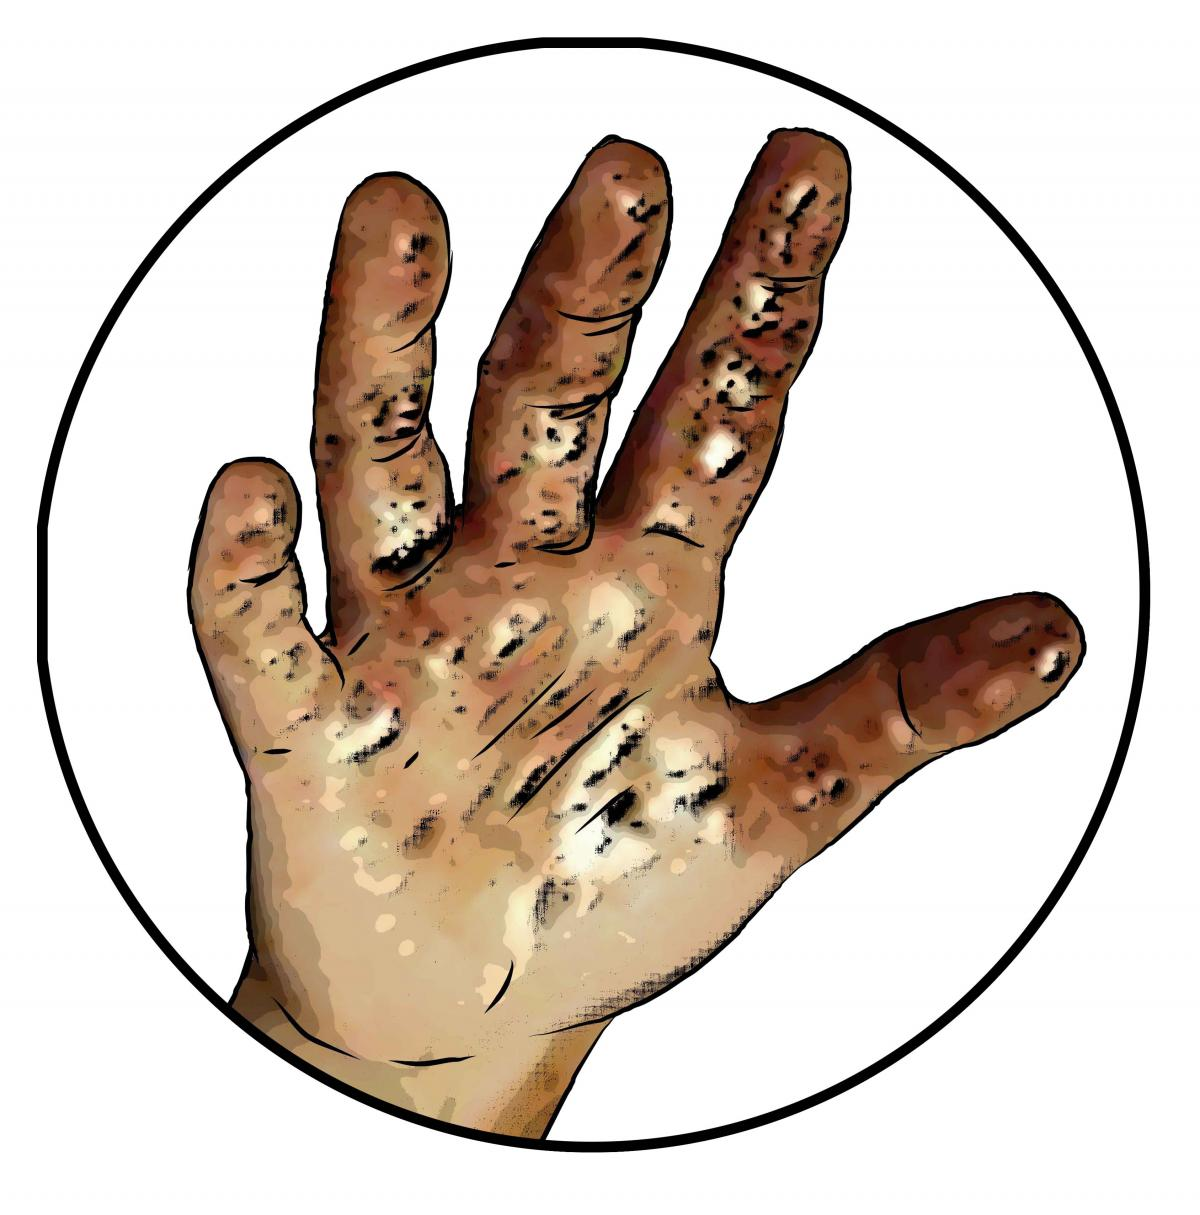 Hygiene - Child's dirty hand - 01 - Nigeria